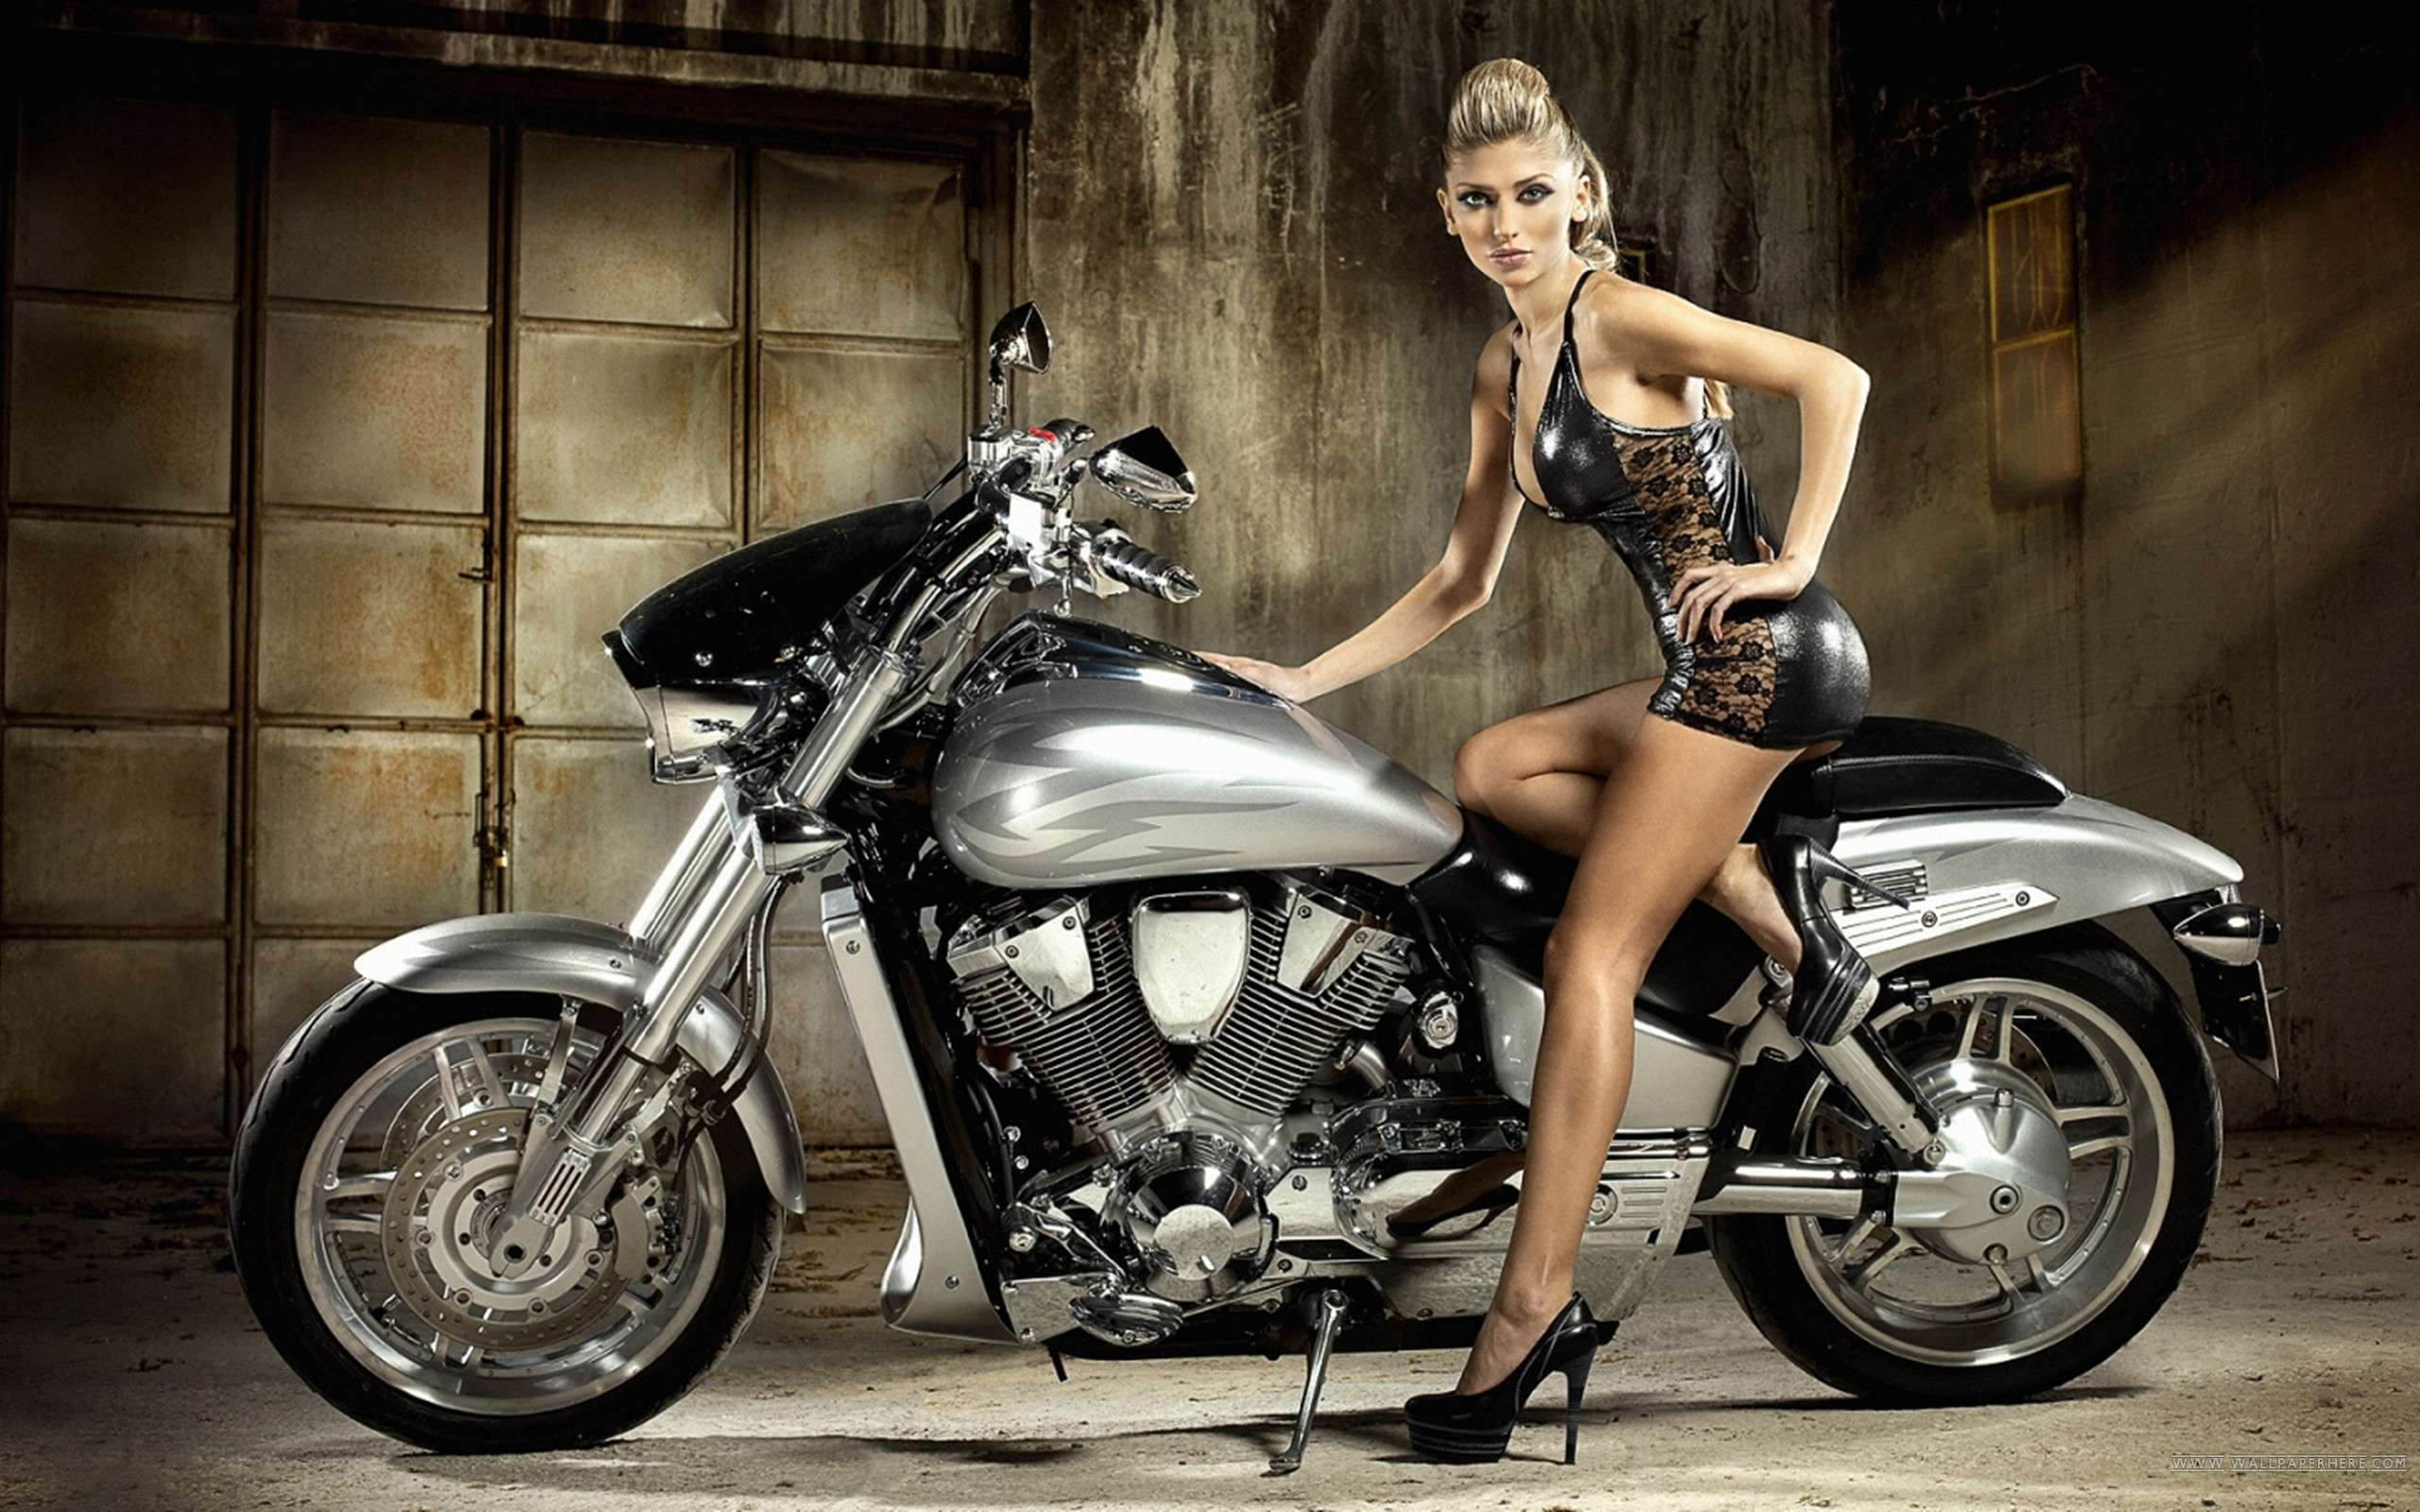 Hot Girl On Motorcycle Wallpaper Hd Car Wallpapers